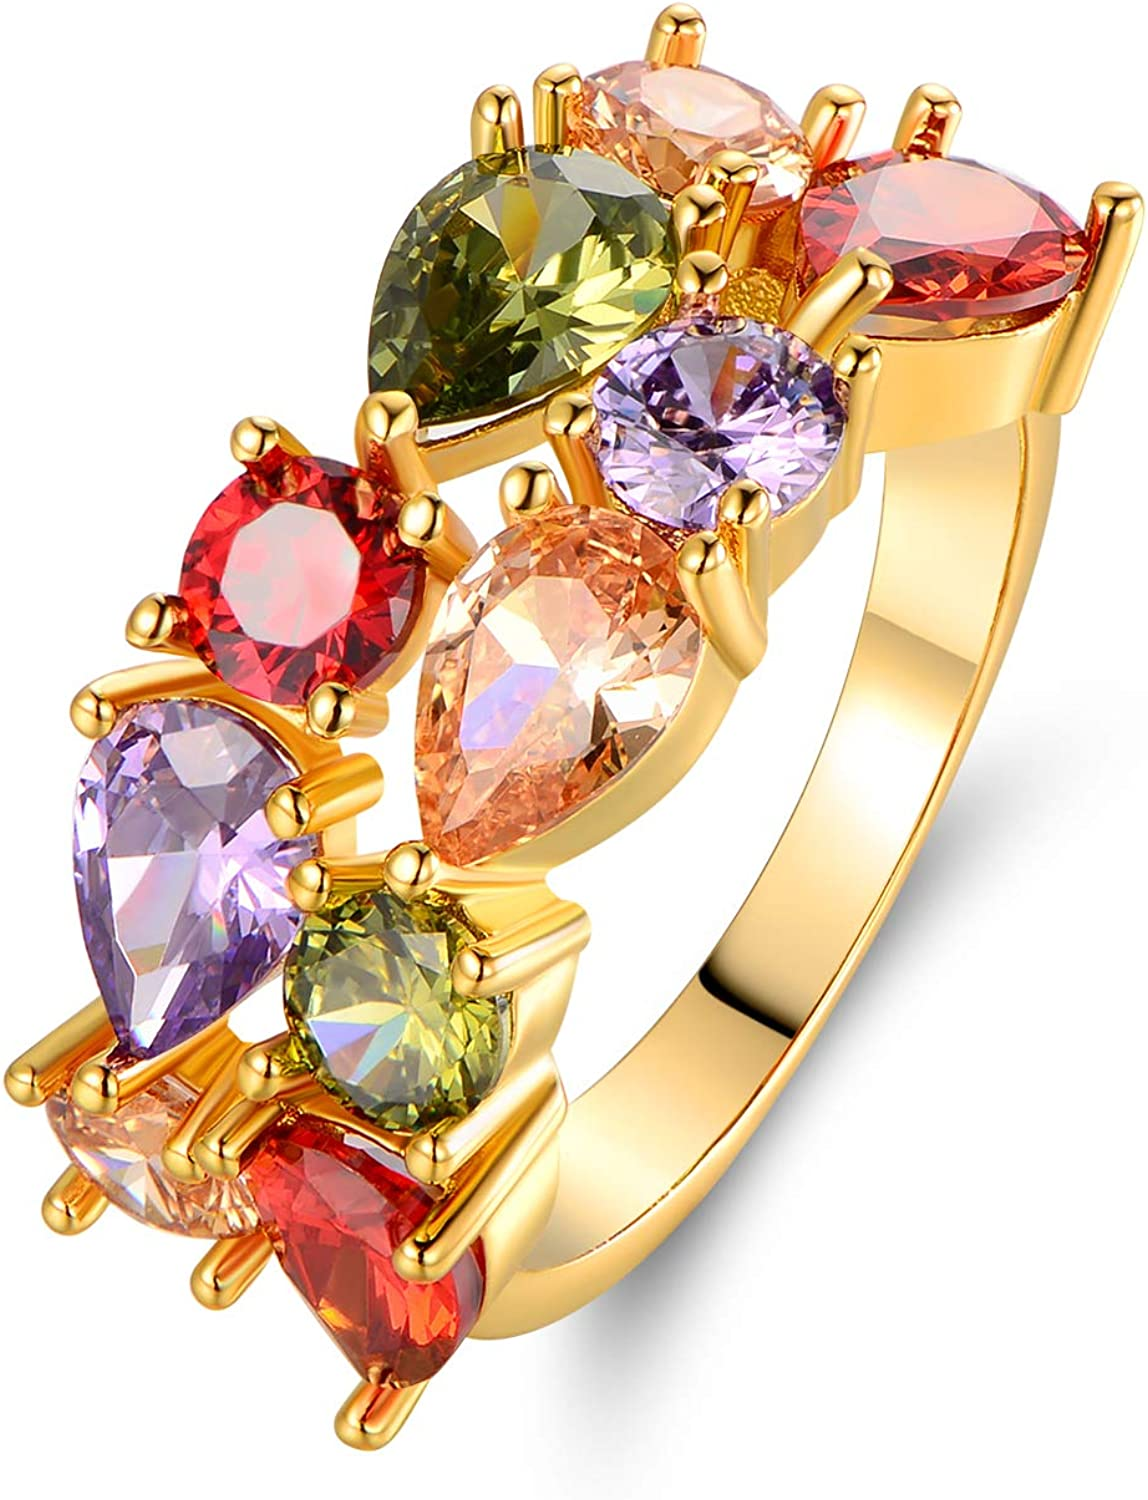 Barzel 18K Gold Plated & Rose Gold Plated Multi Color Created-Gemstone Ring